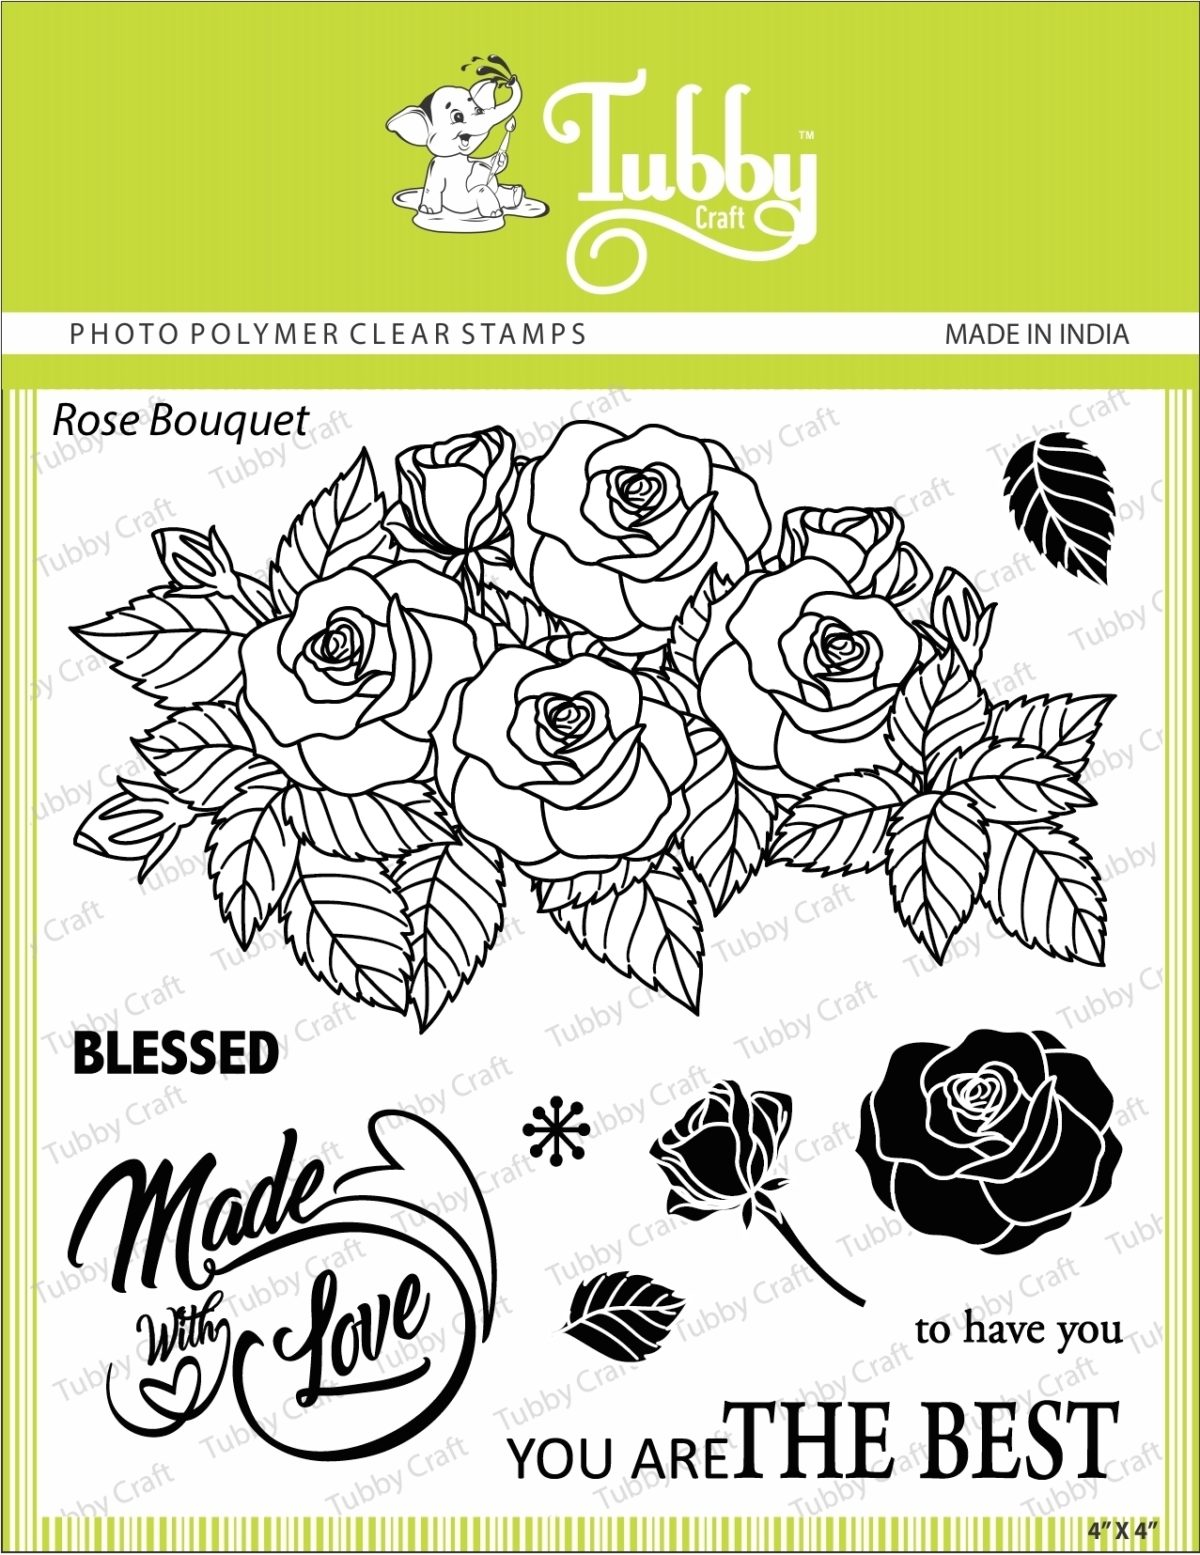 Rose Bouquet - Stamp